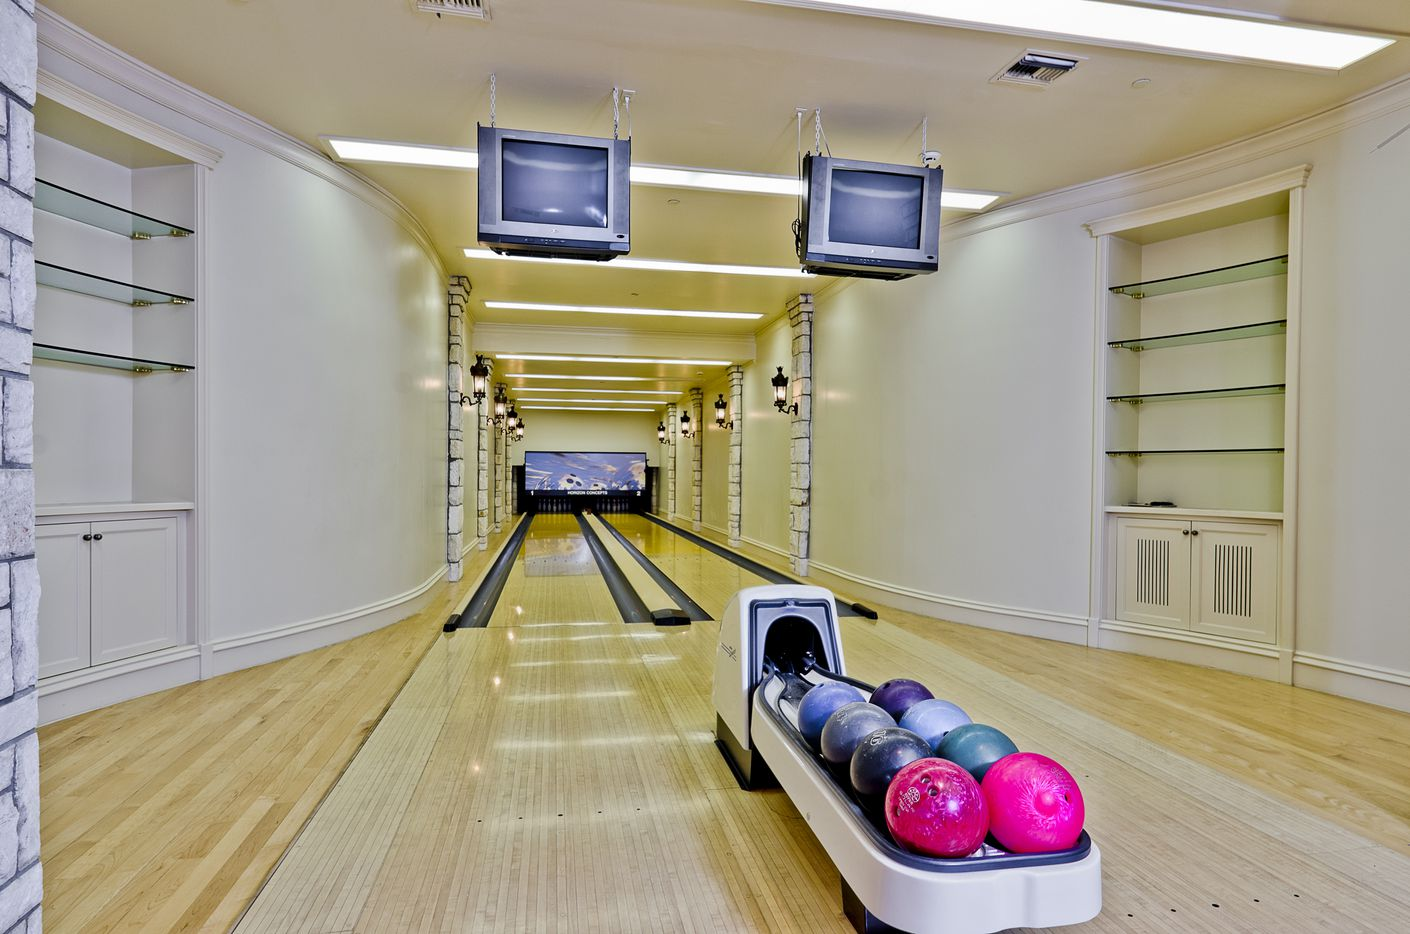 The bowling alley in the Champ D'Or mansion.